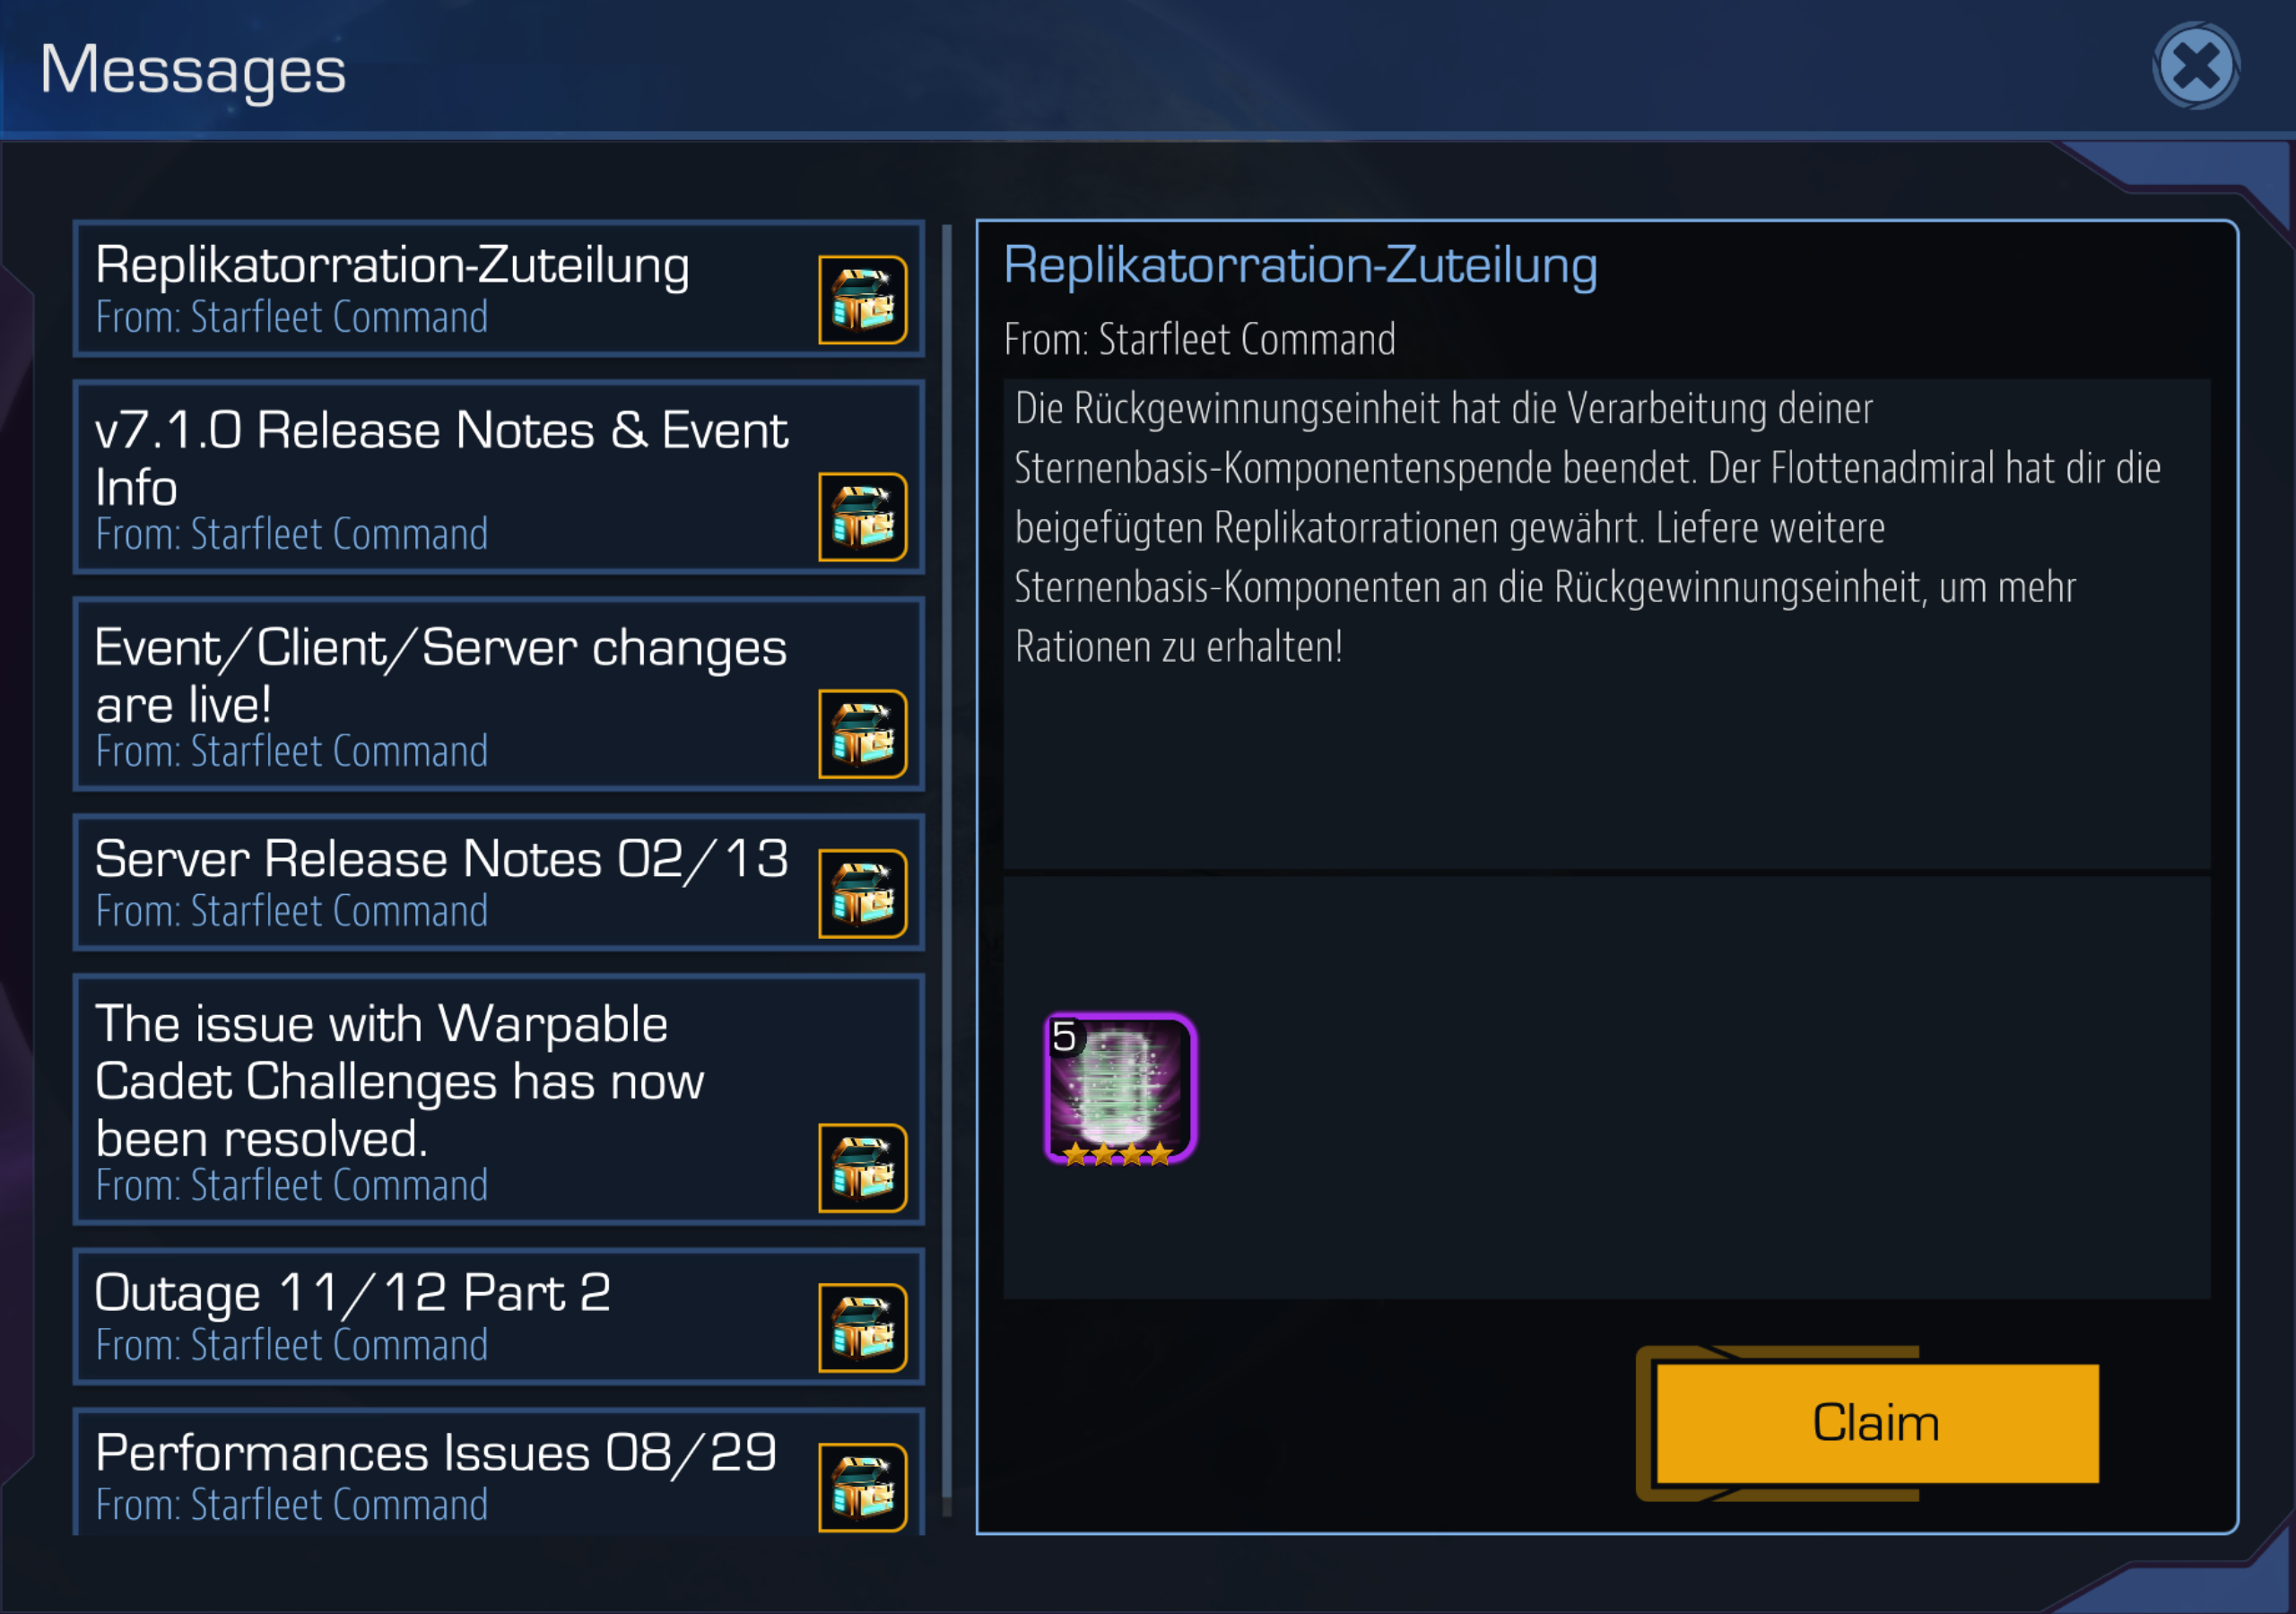 Replicator ration in game message — Disruptor Beam Forums